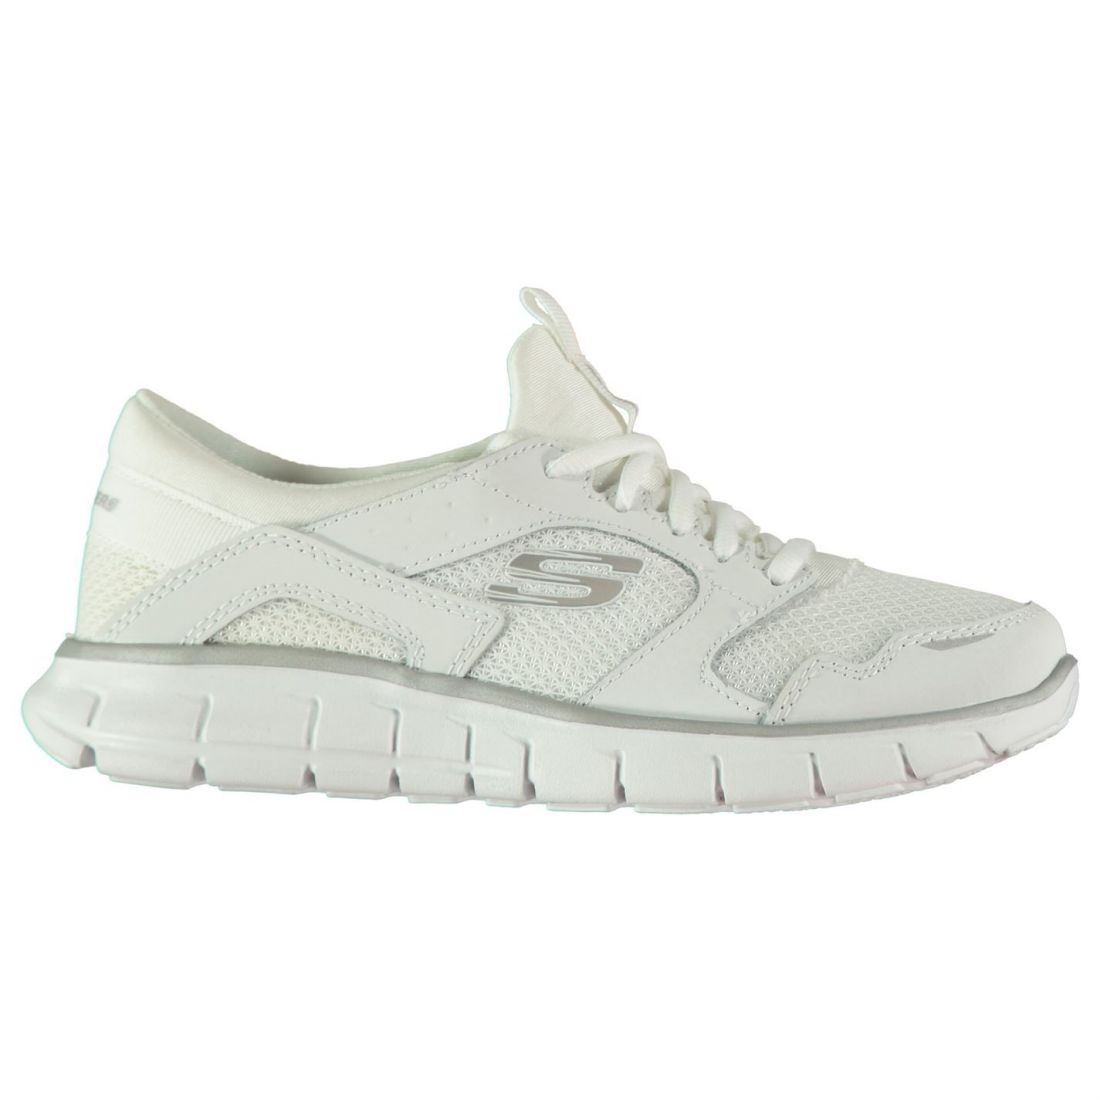 Skechers femmes Flex Runner Trainers Runners Lace Up Breathable Mesh Panels